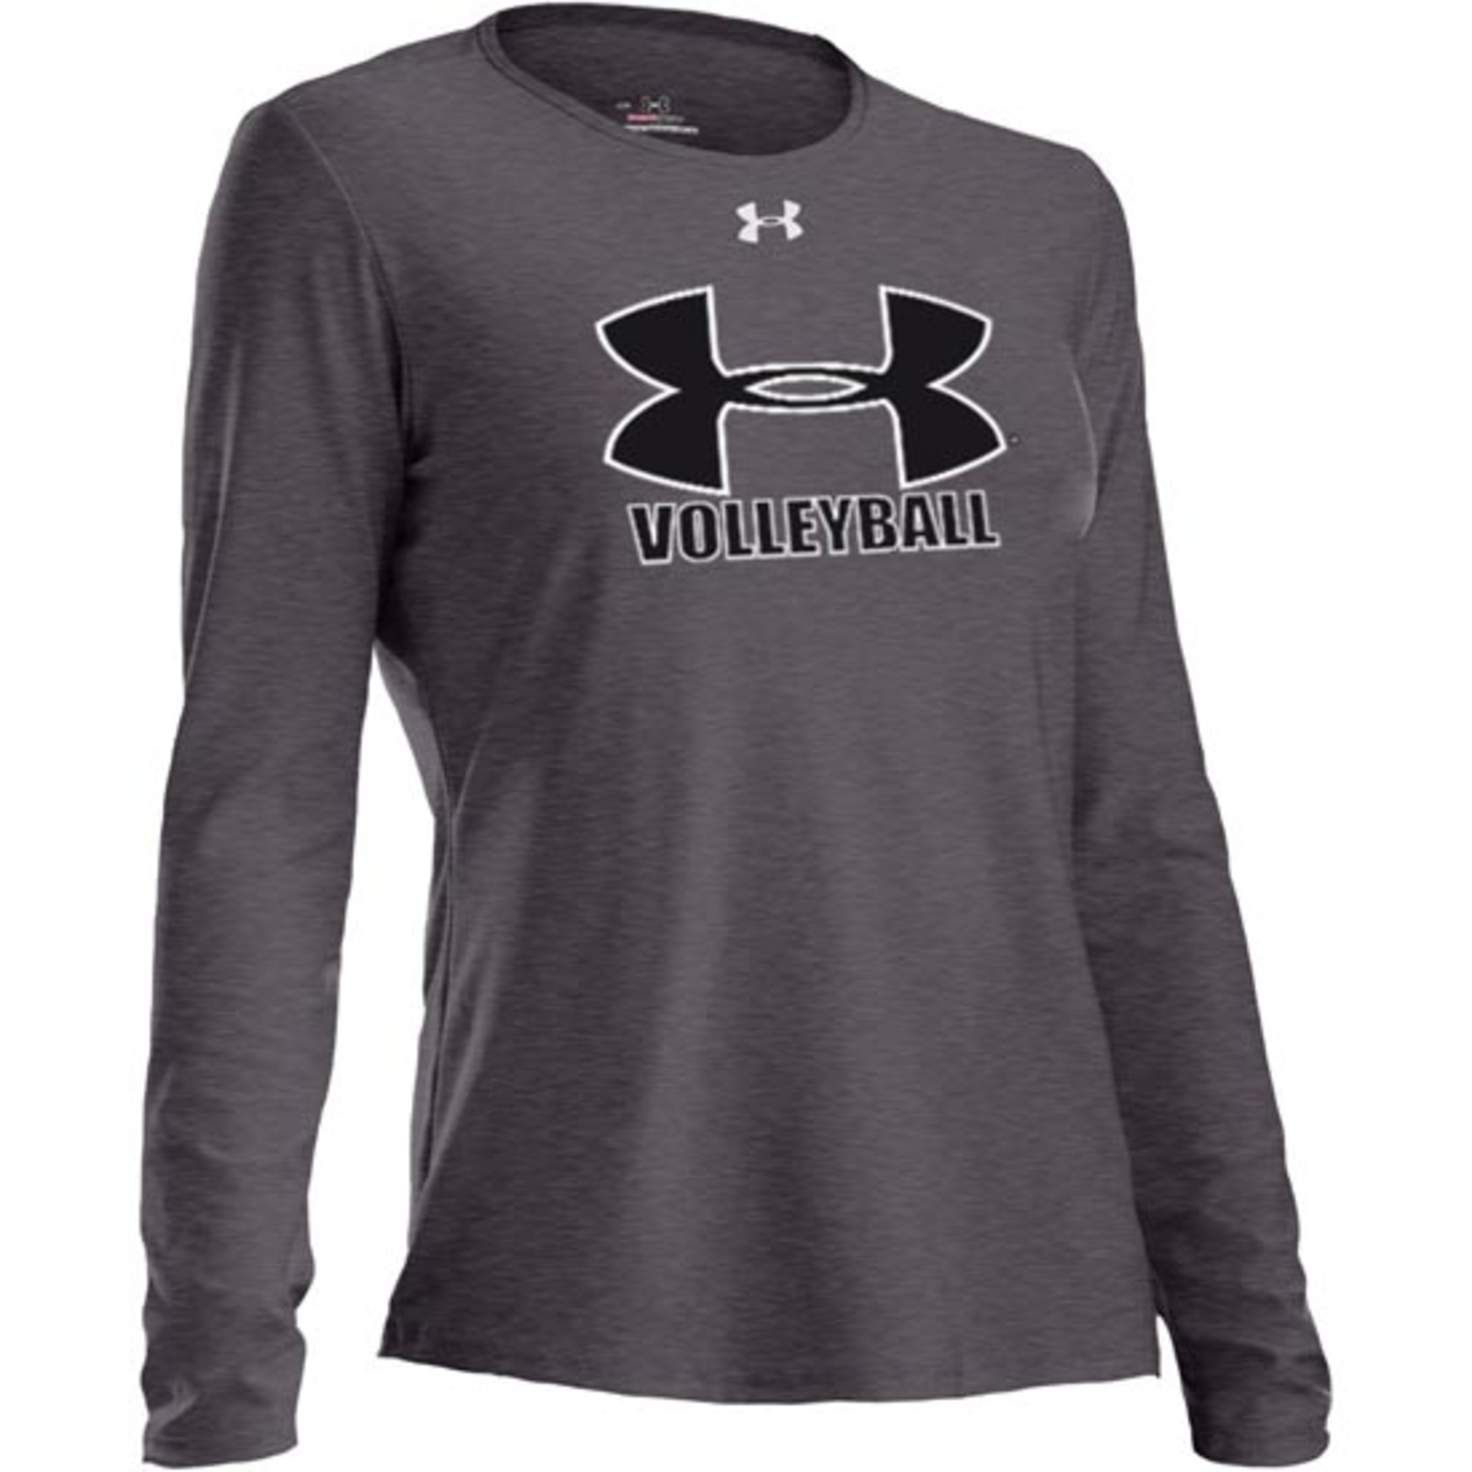 Under Armour Women S Volleyball Long Sleeve Tech T Shirt Volleyball Outfits Women Volleyball Tech T Shirts